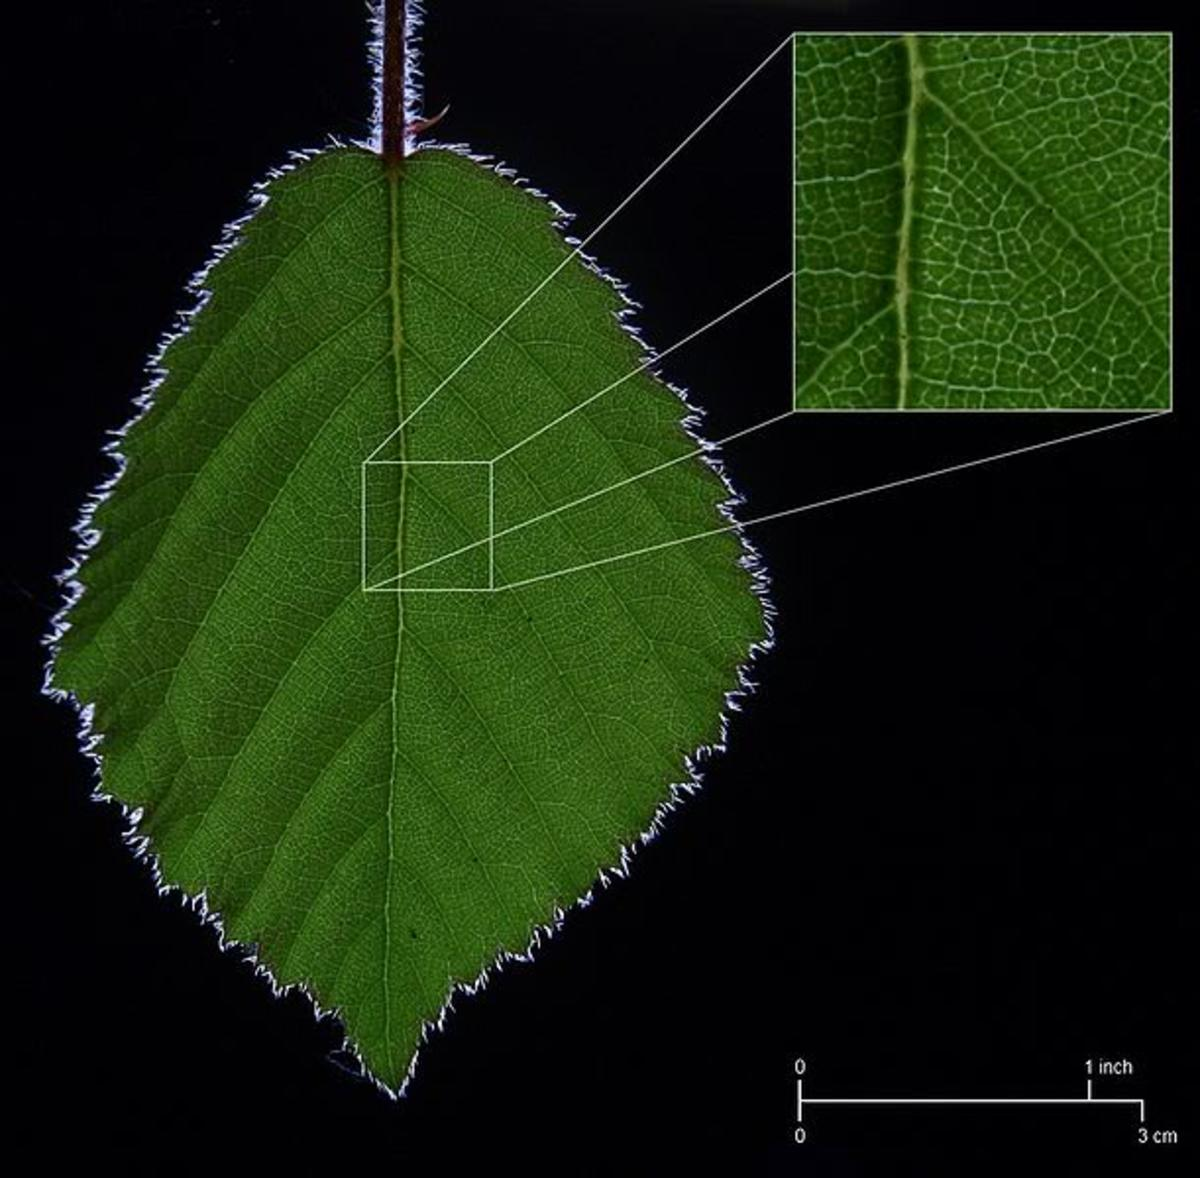 Vascular Tissue in a Leaf